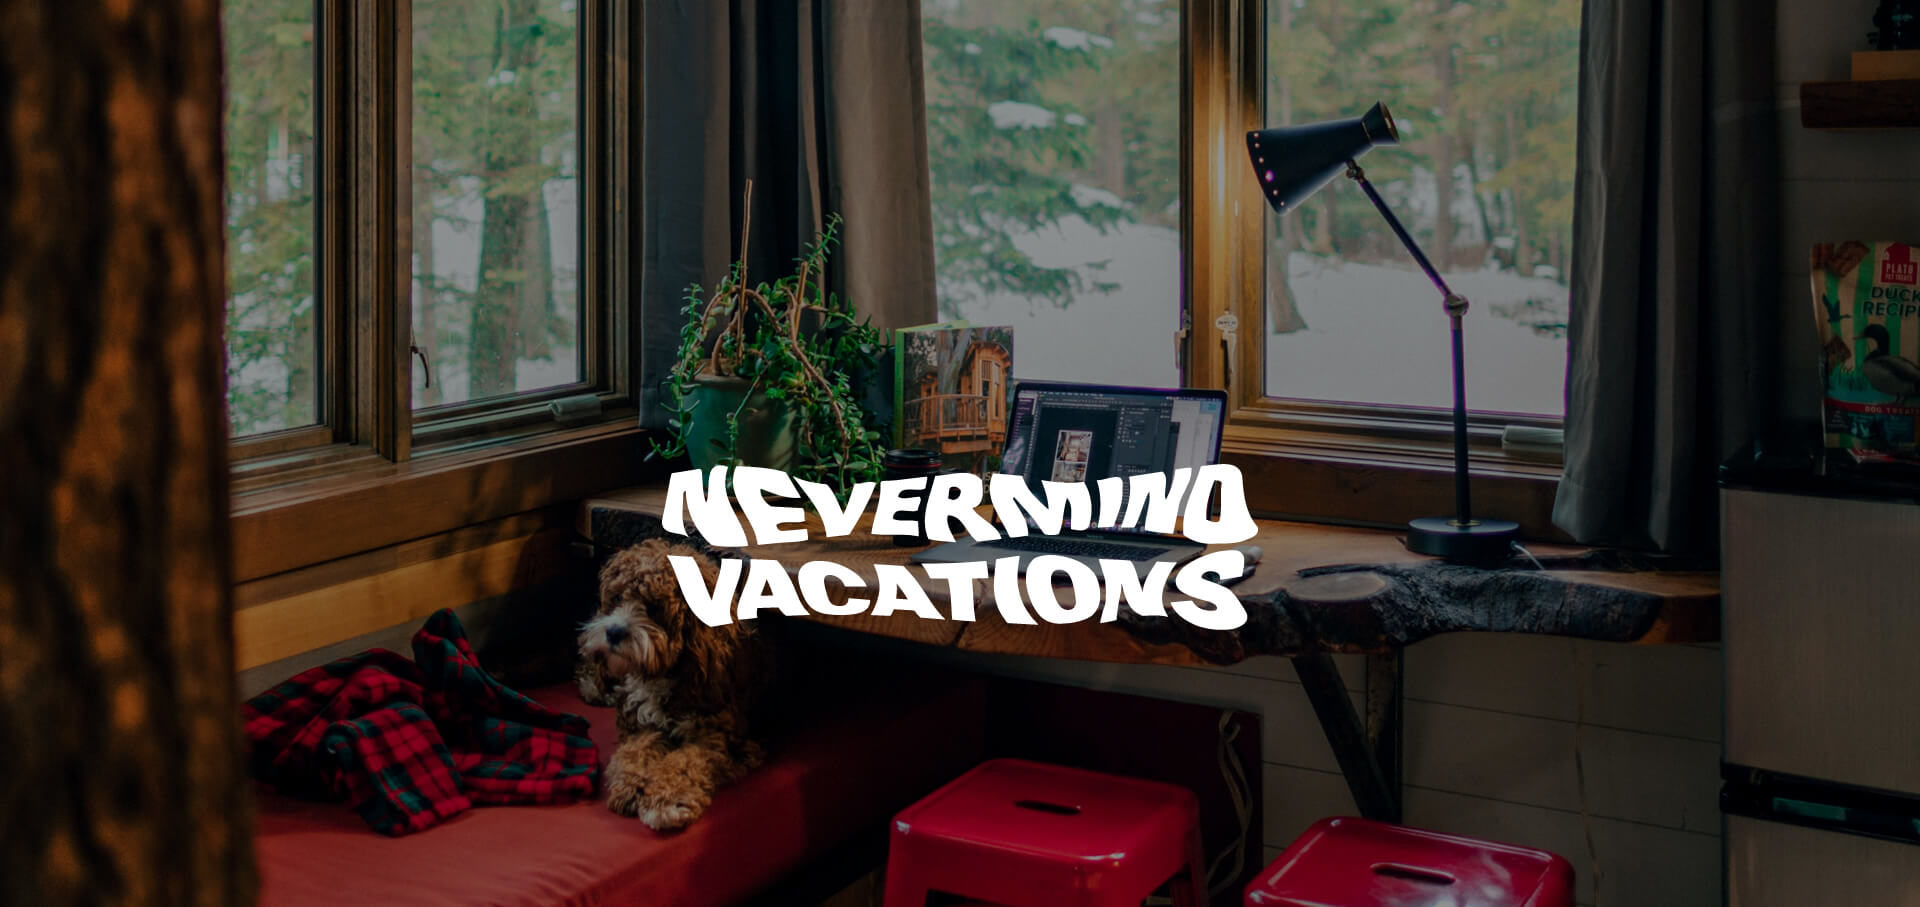 Nevermind Vacations banner logo